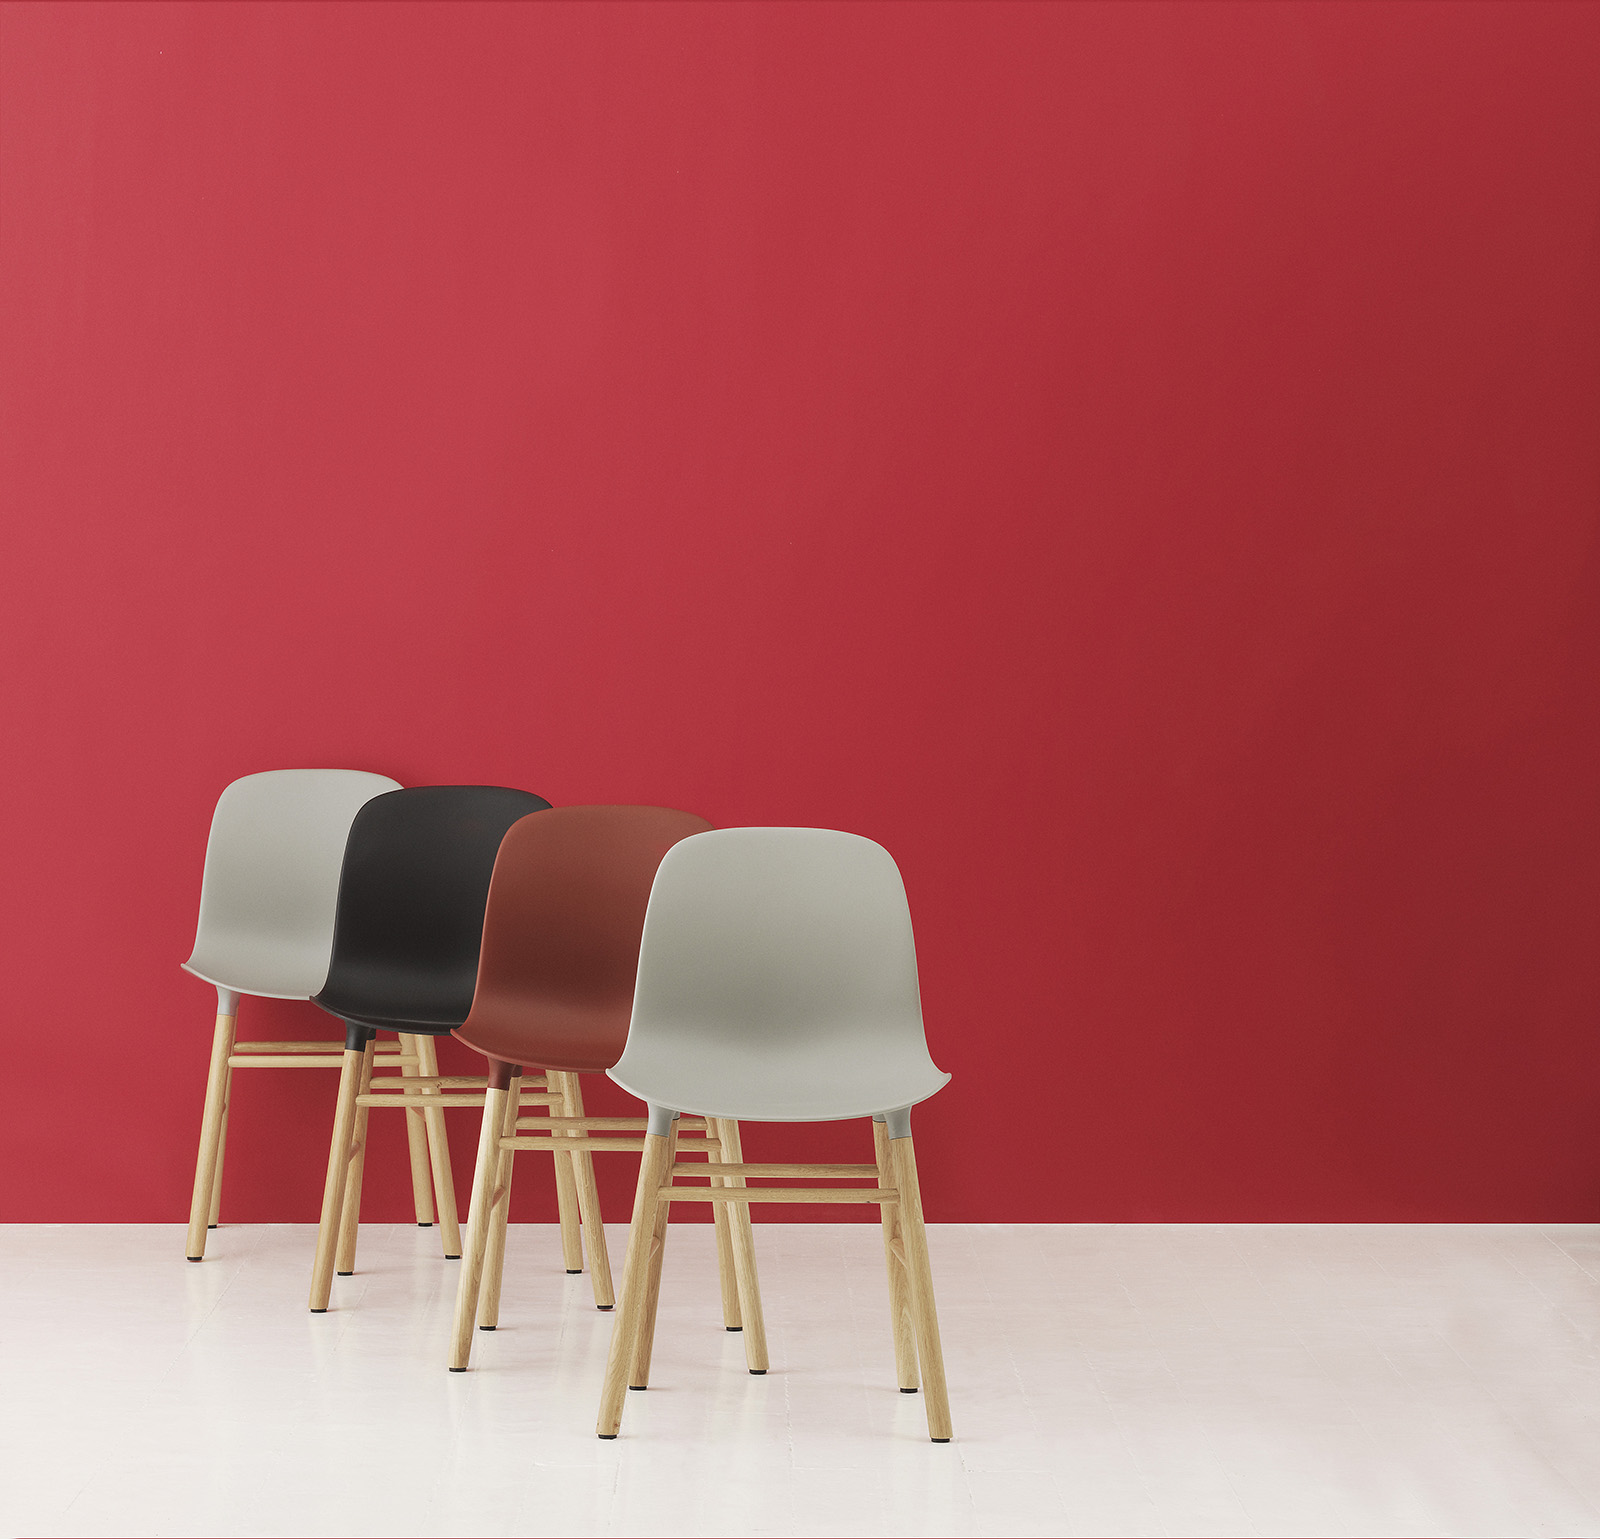 Form_Chair_Catalogue_16